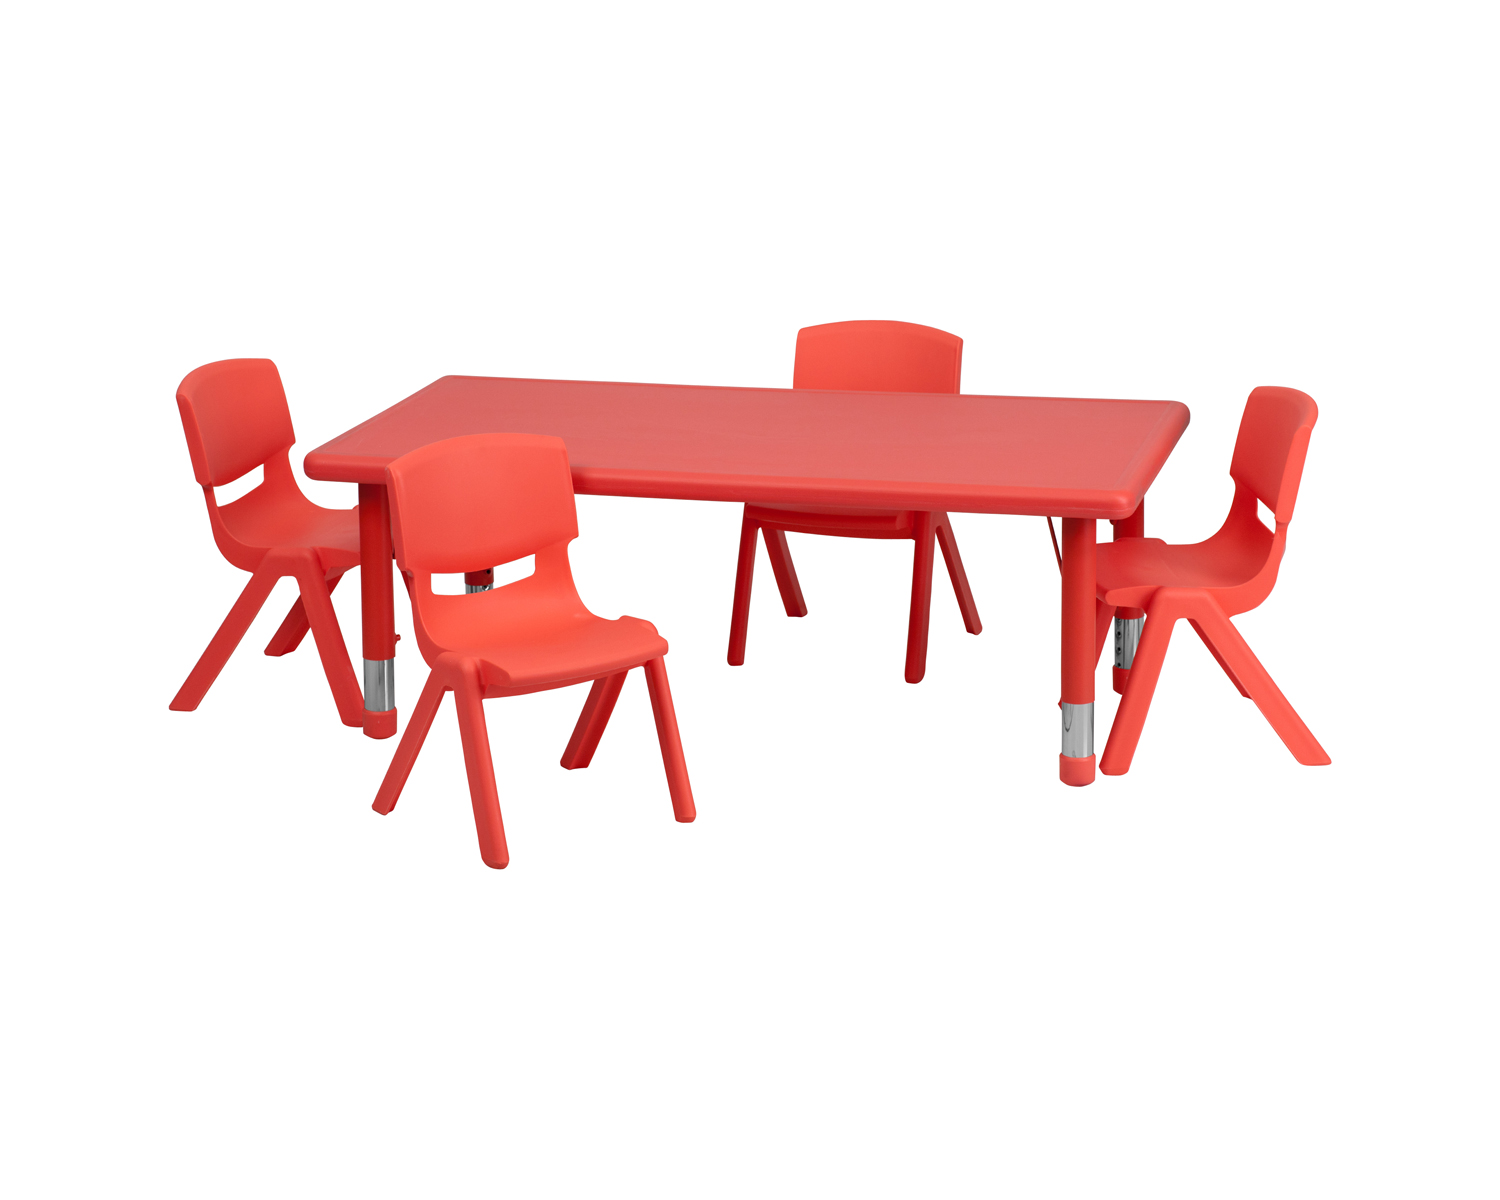 24'W x 48'L Adjustable Rectangular Red Plastic Activity Table Set with 4 School Stack Chairs [YU-YCX-0013-2-RECT-TBL-RED-R-GG]